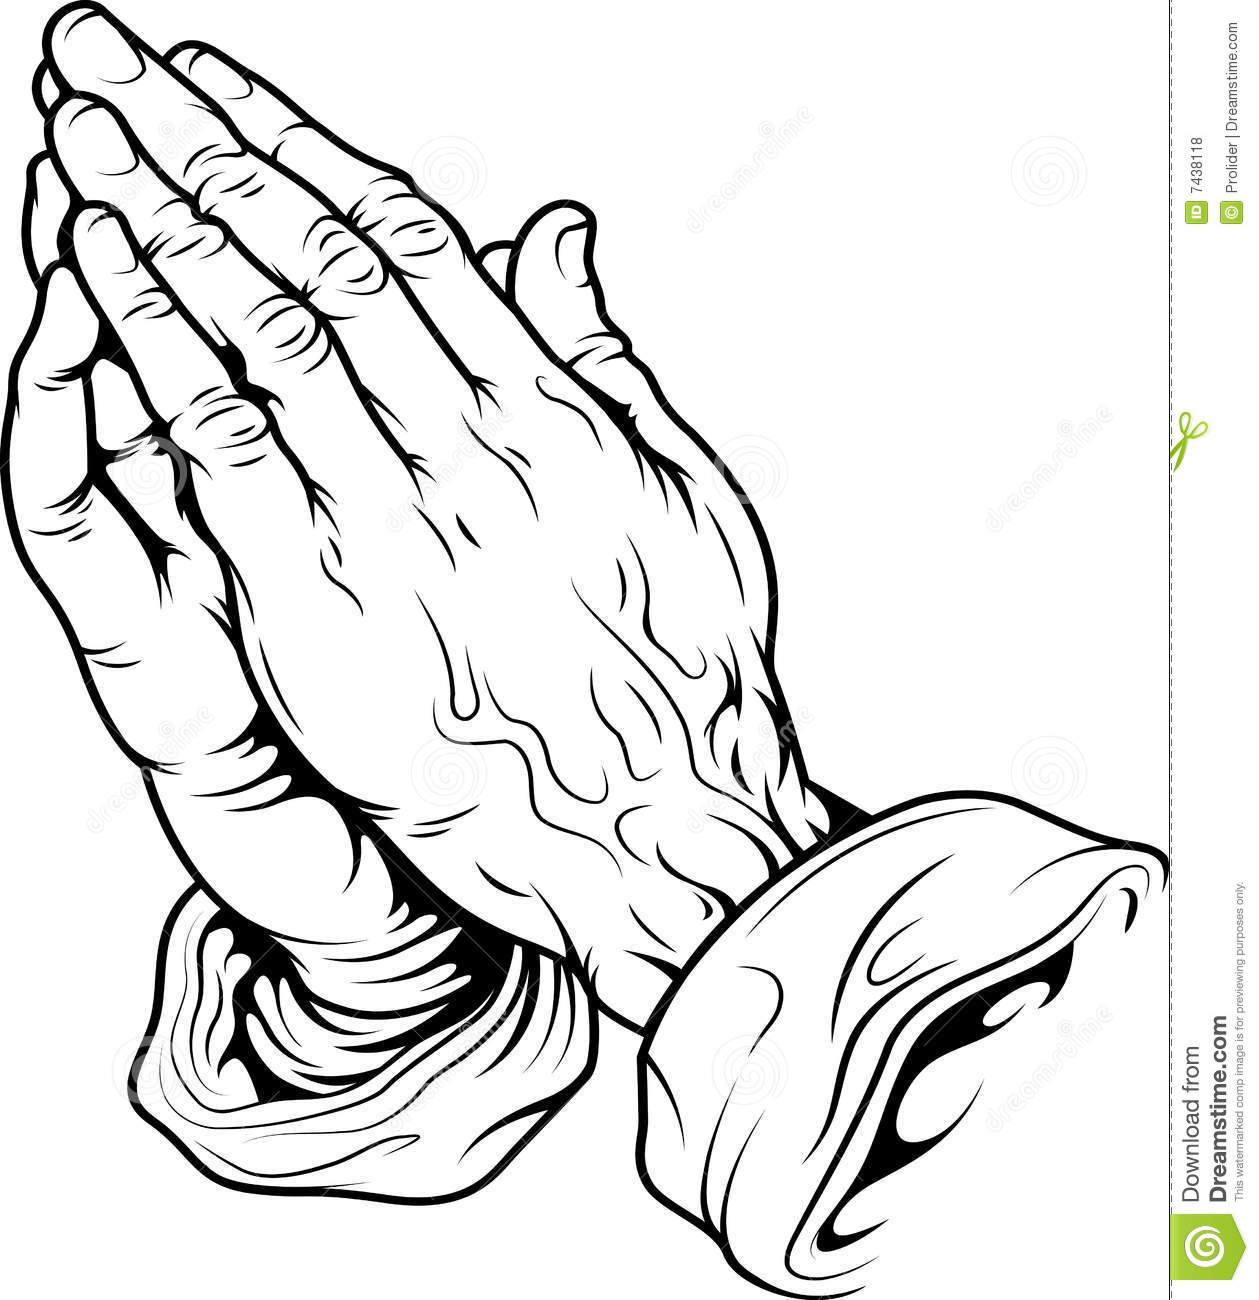 1259x1300 Praying Hands Coloring Page